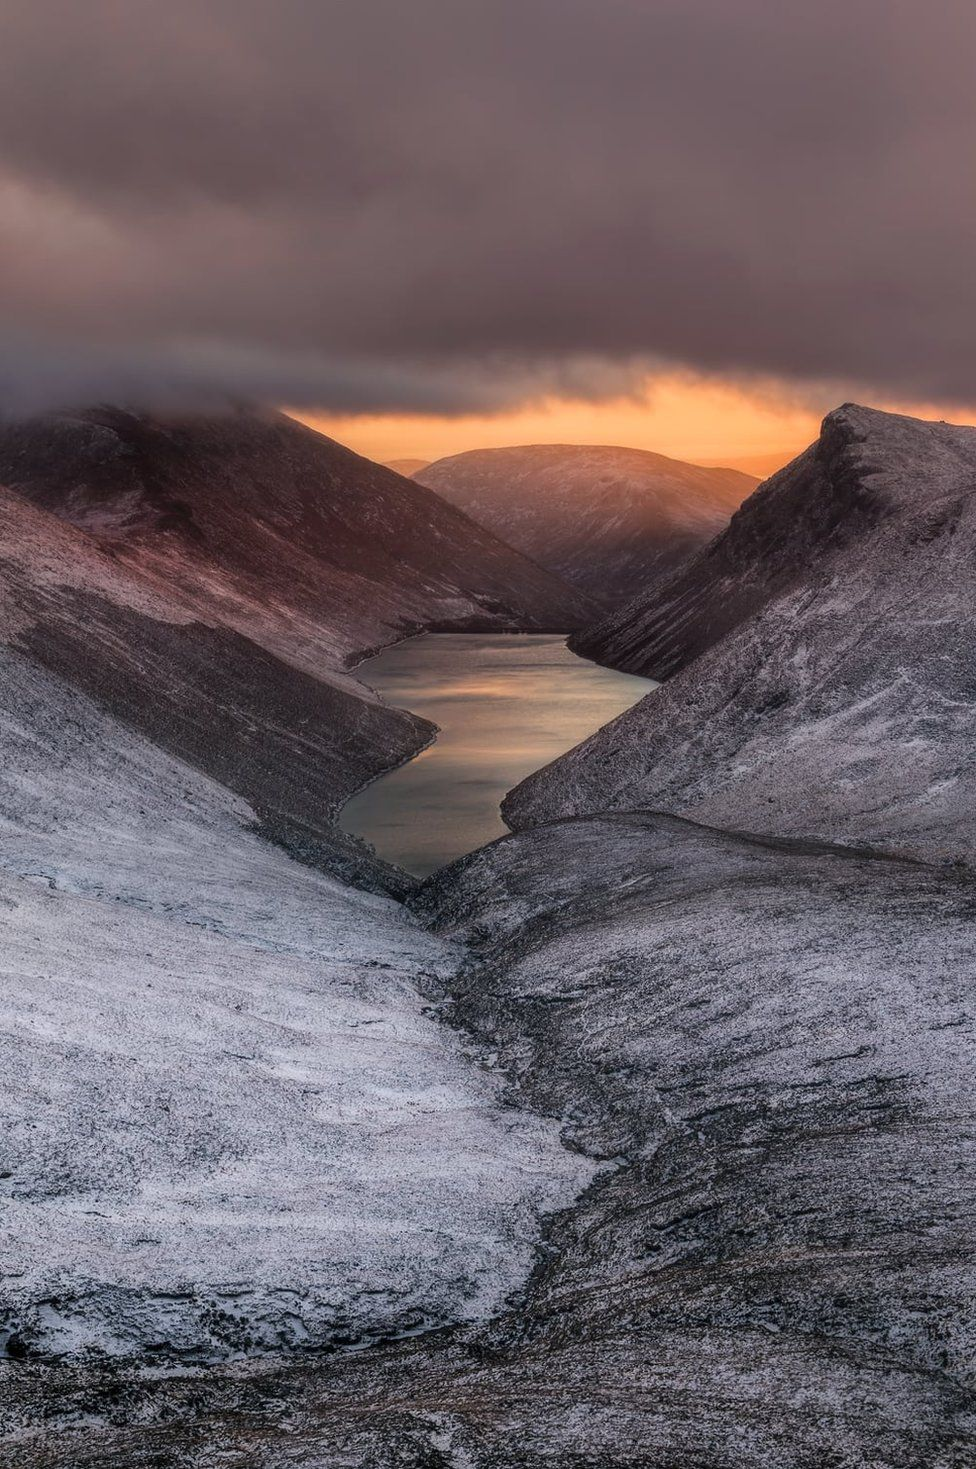 Sunset over Ben Crom reservoir with snow dusting the neighbouring land as seen from Slieve Corragh in the Mourne mountains in County Down